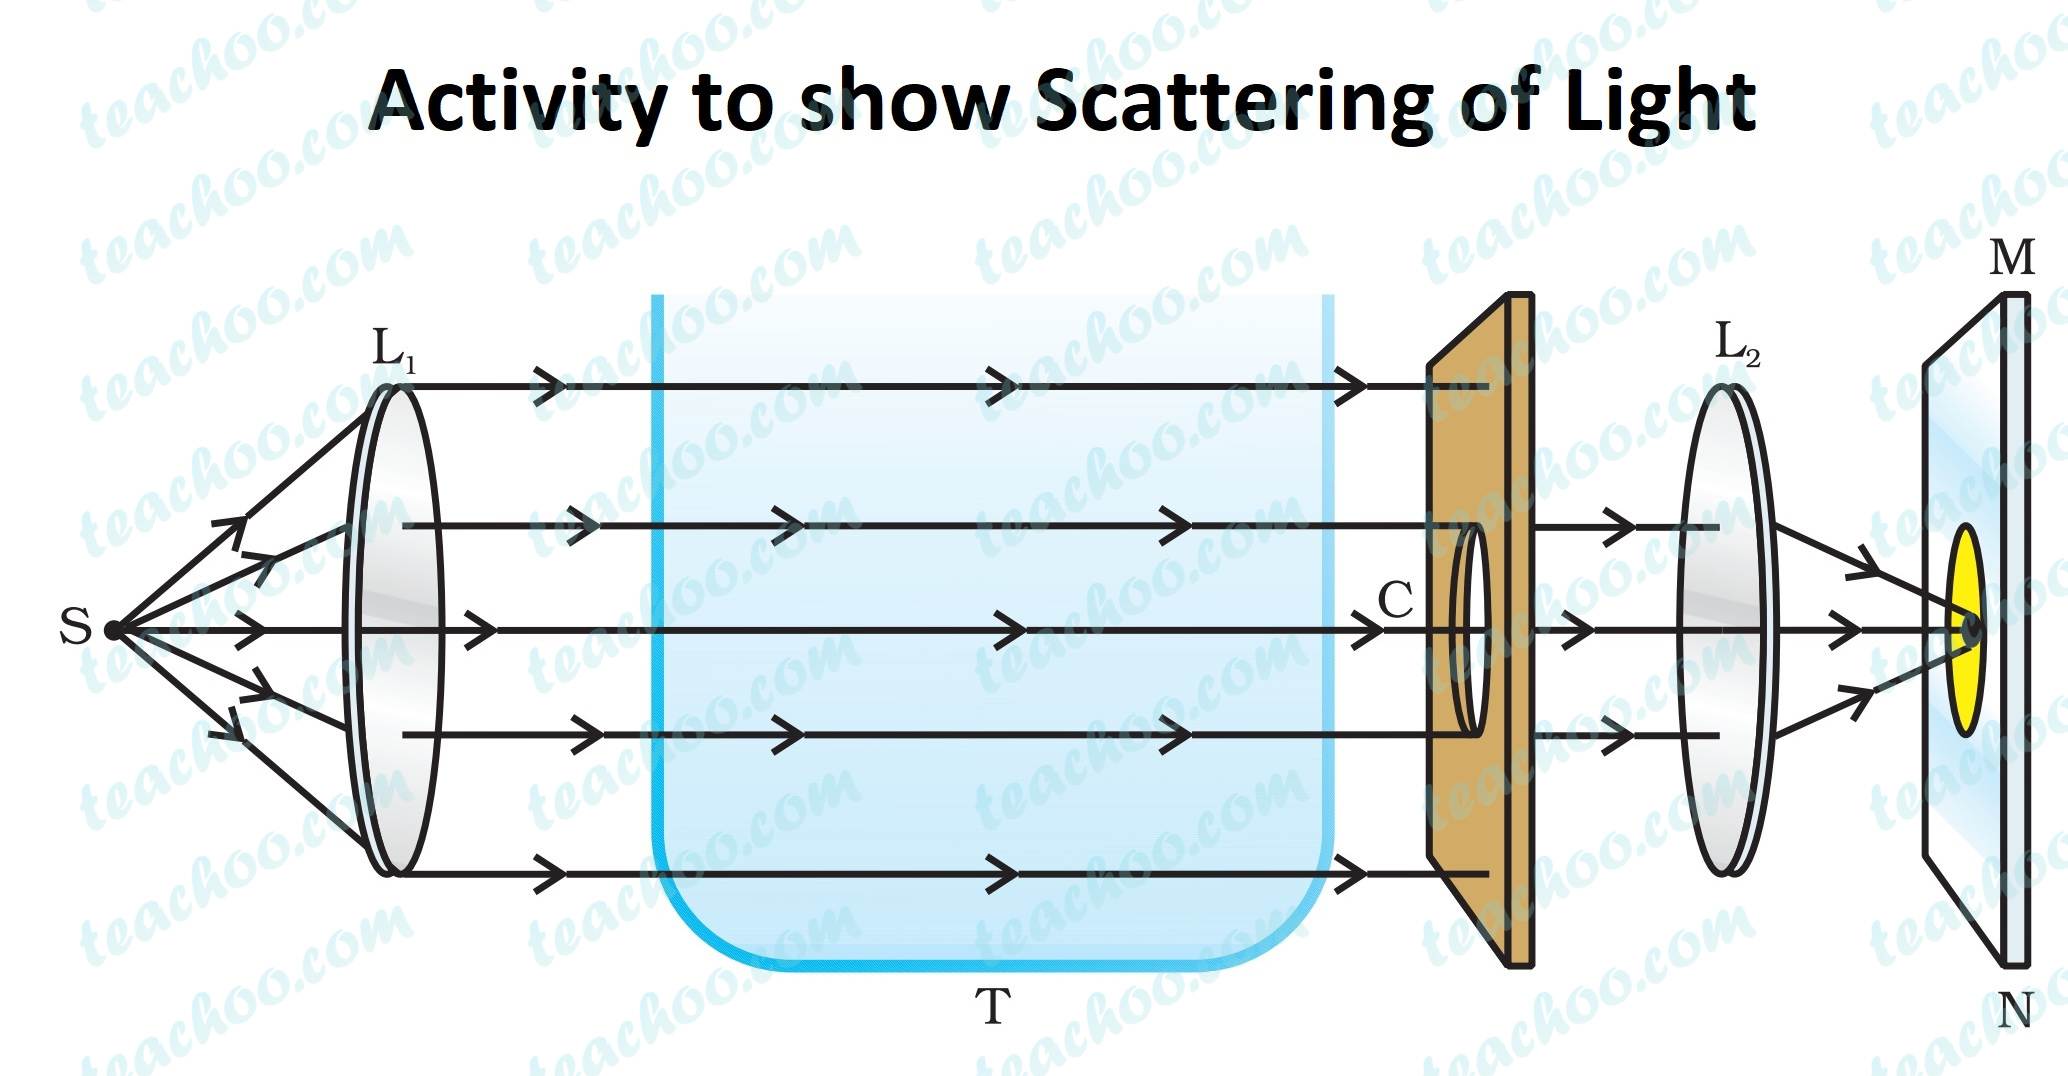 activity-to-show-scattering-of-light---teachoo - Copy.jpg